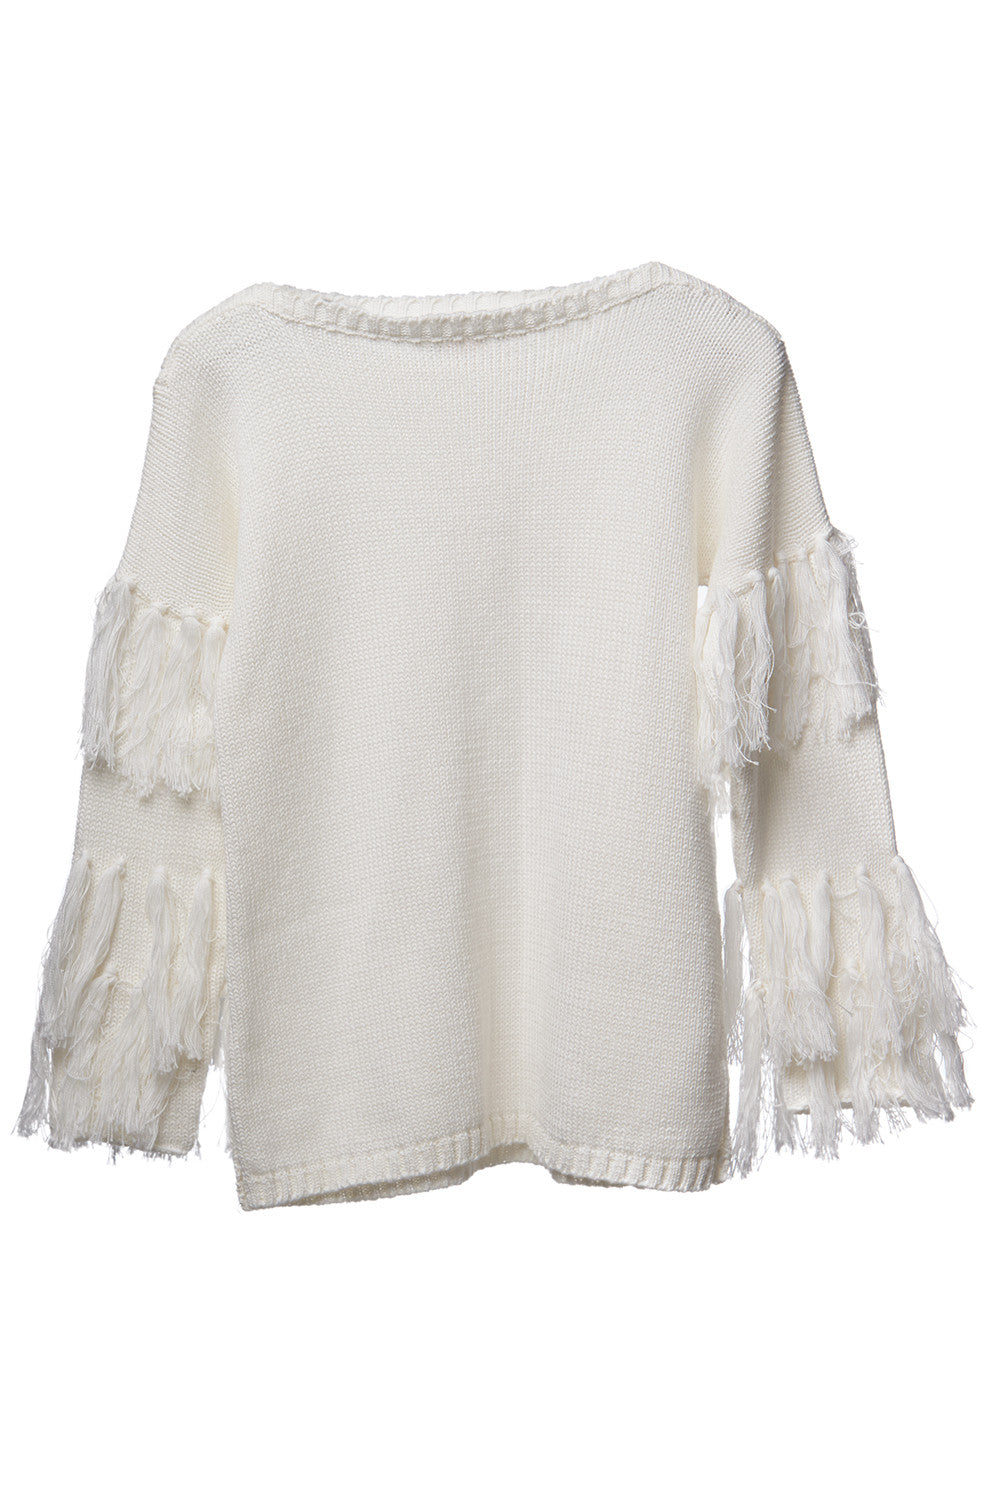 AW17 Mii Love Mu Fringed Jumper Cream